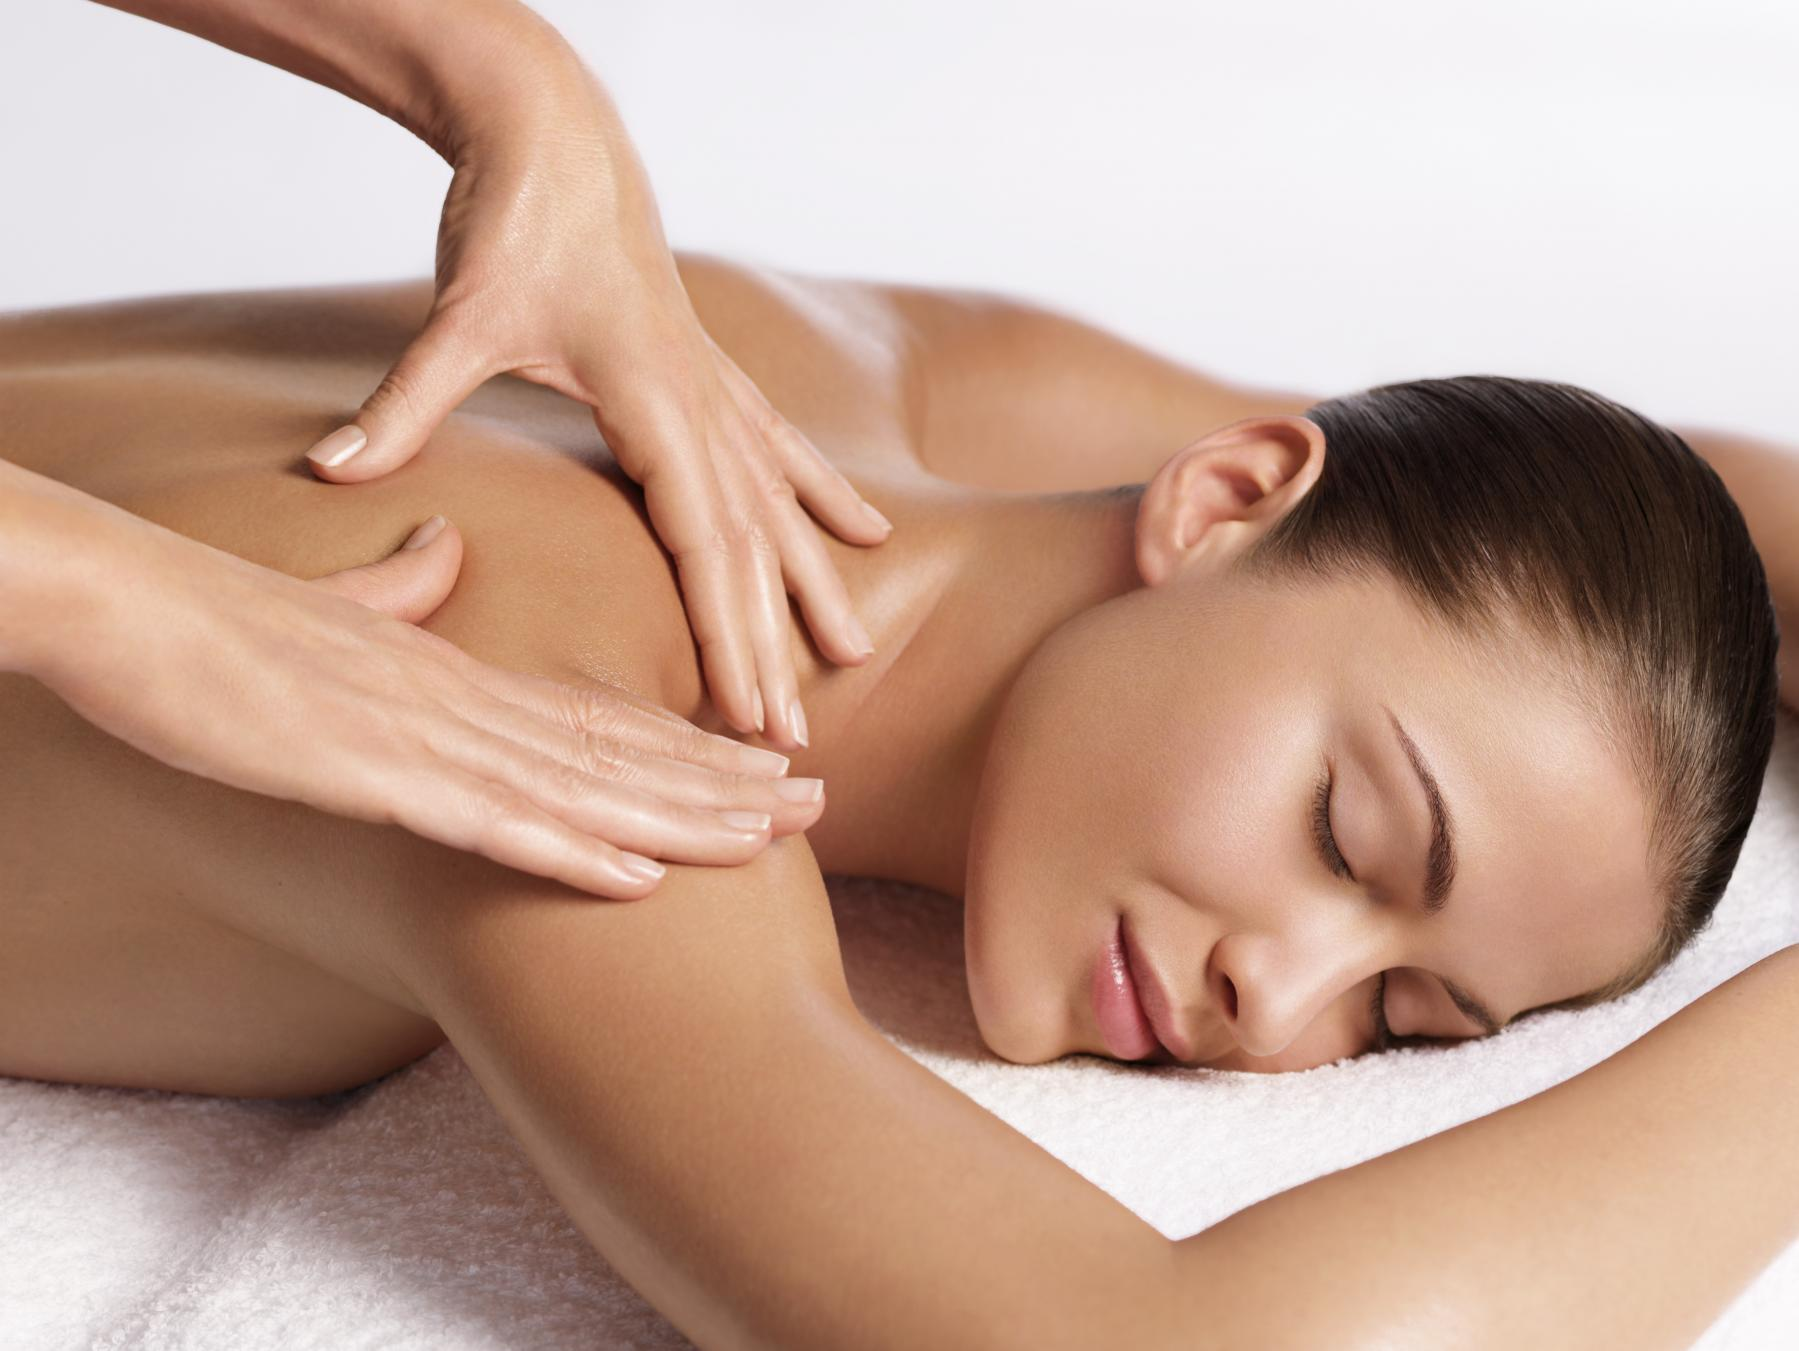 A woman is lying down and getting a massage/ Massages can lower your cortisol levels.